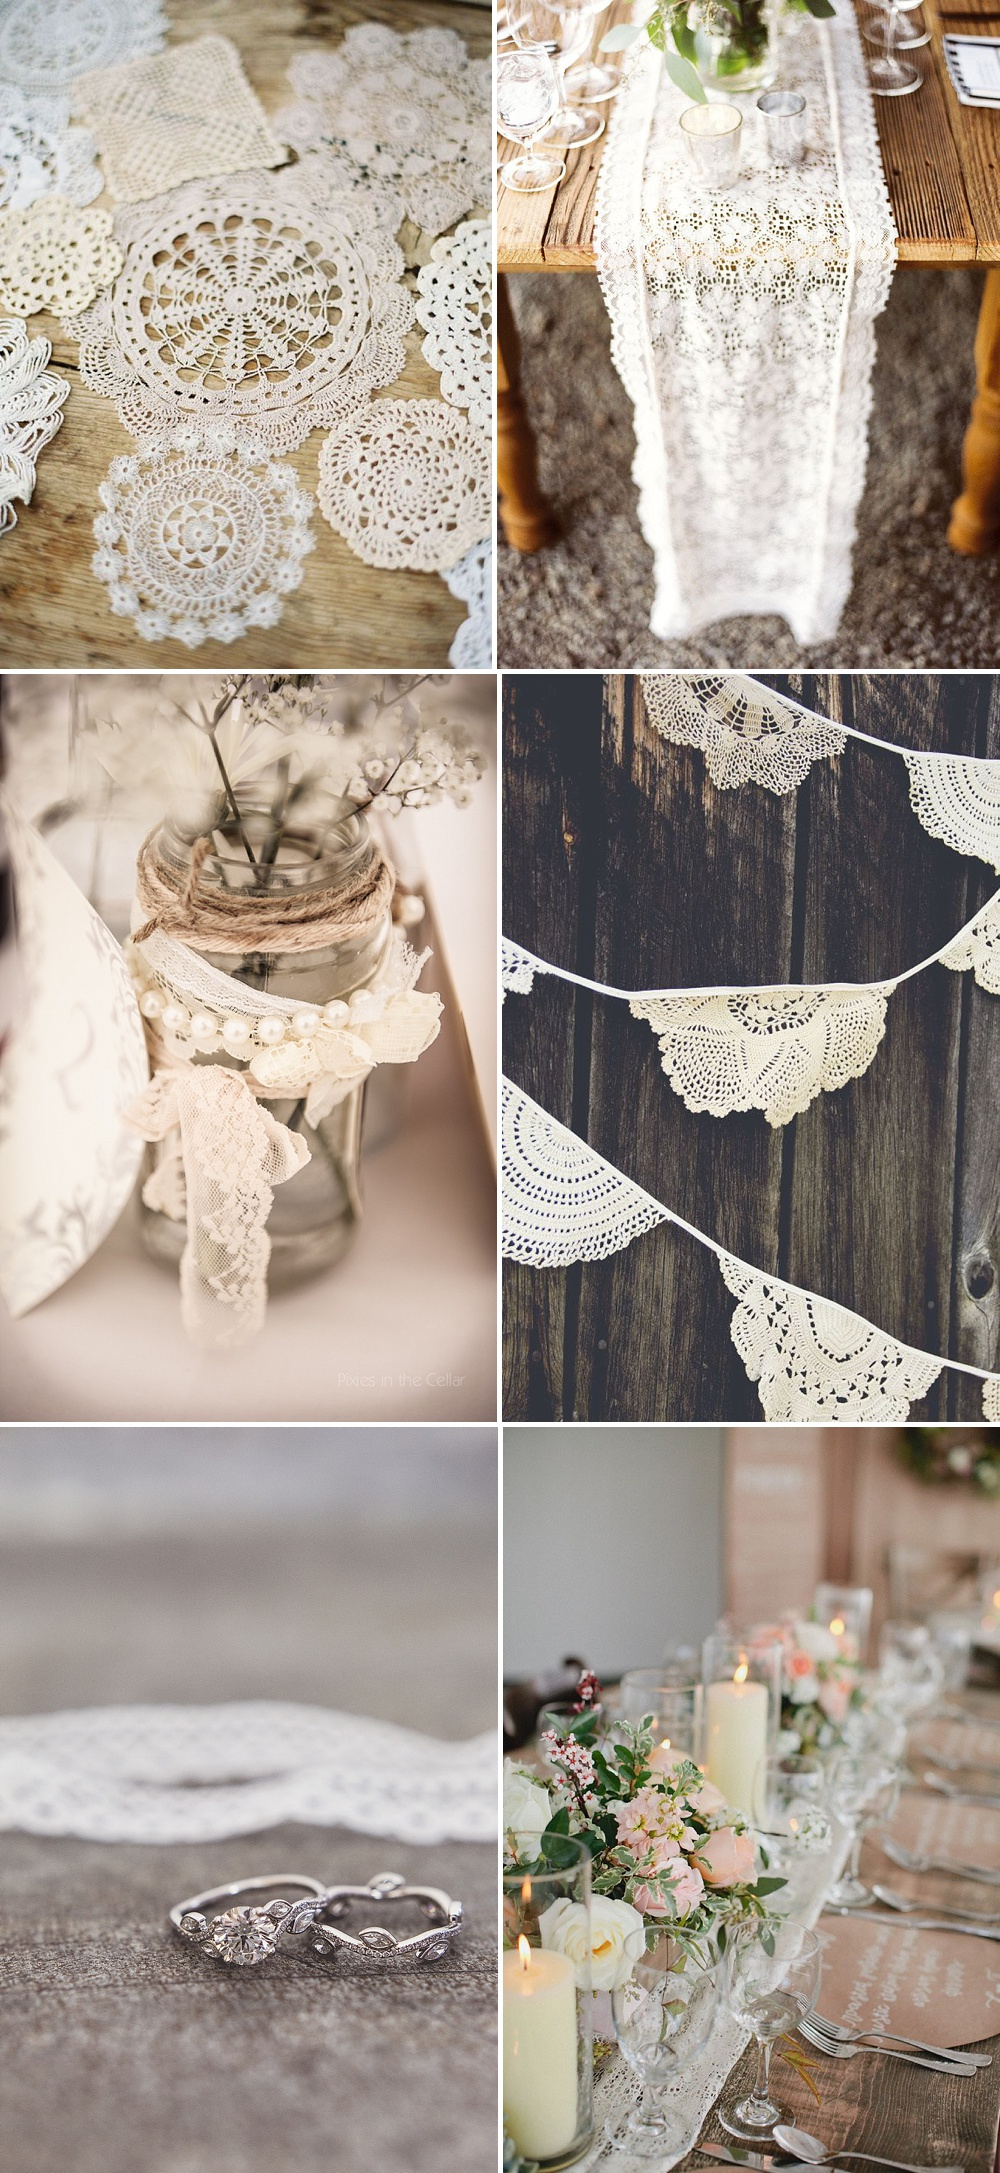 Lace Decor For Your Wedding Day